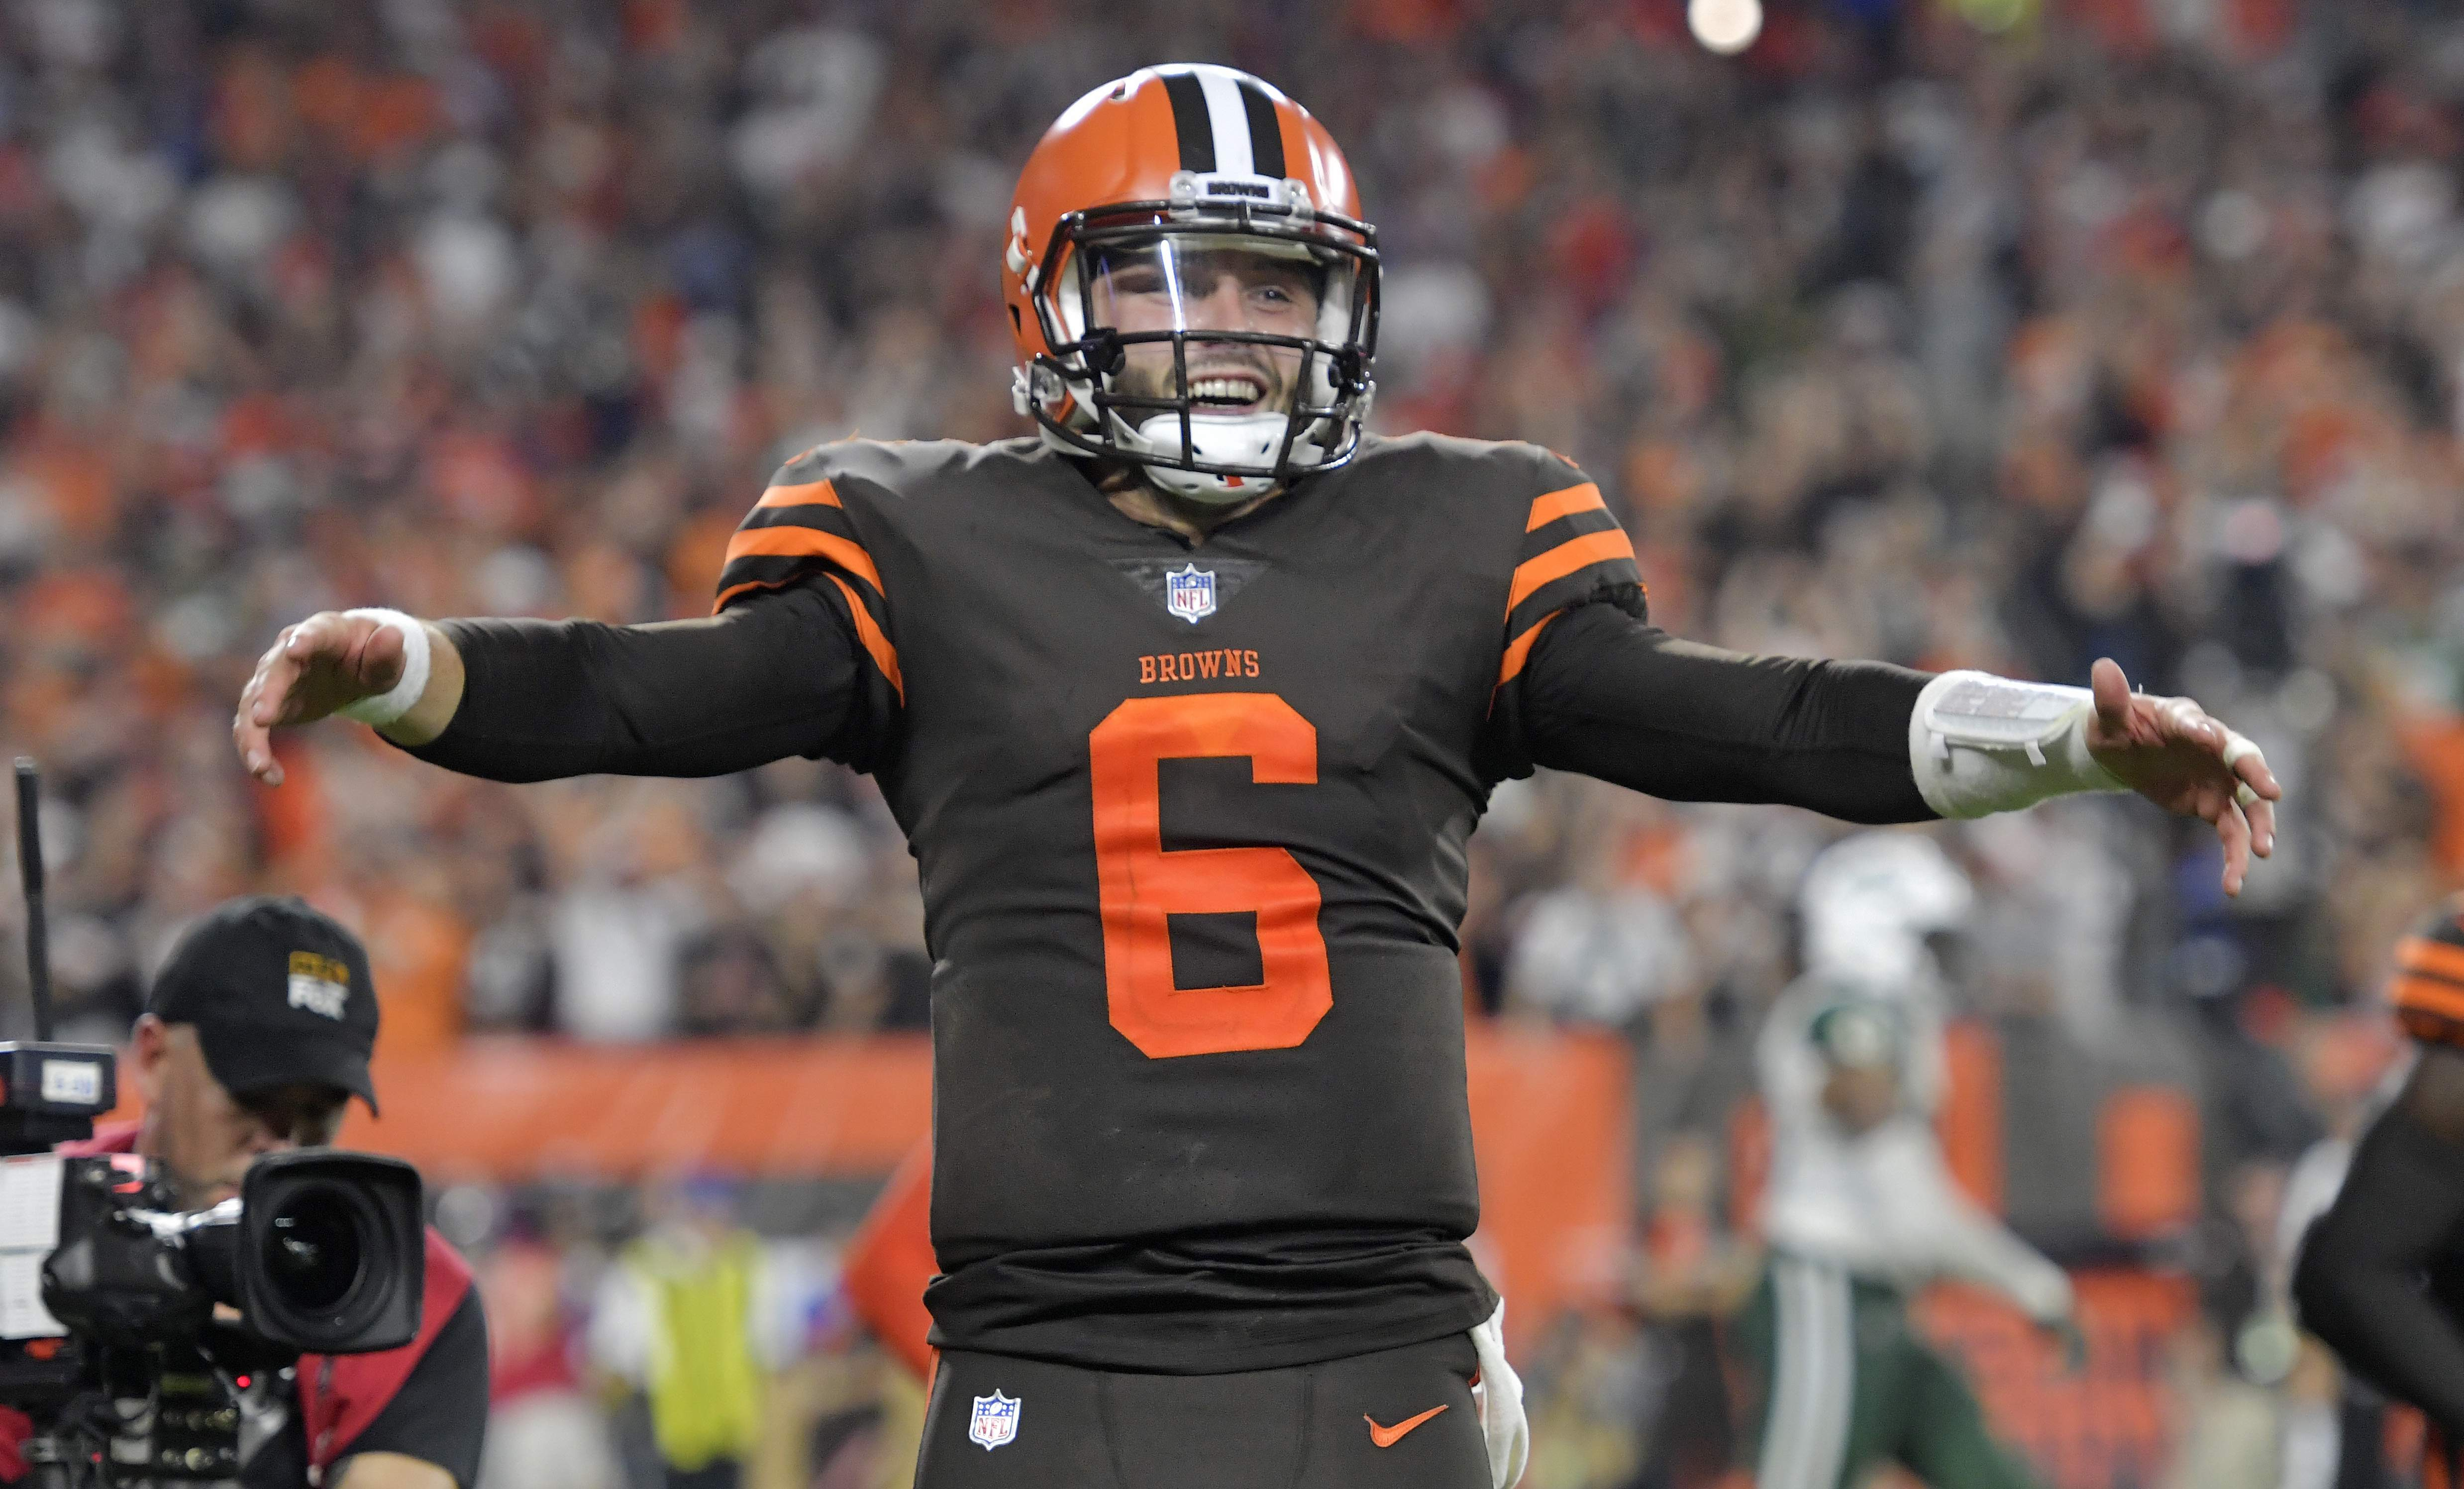 cheaper 5dd74 65ae8 Browns end their 19-game winless streak, and the Baker ...